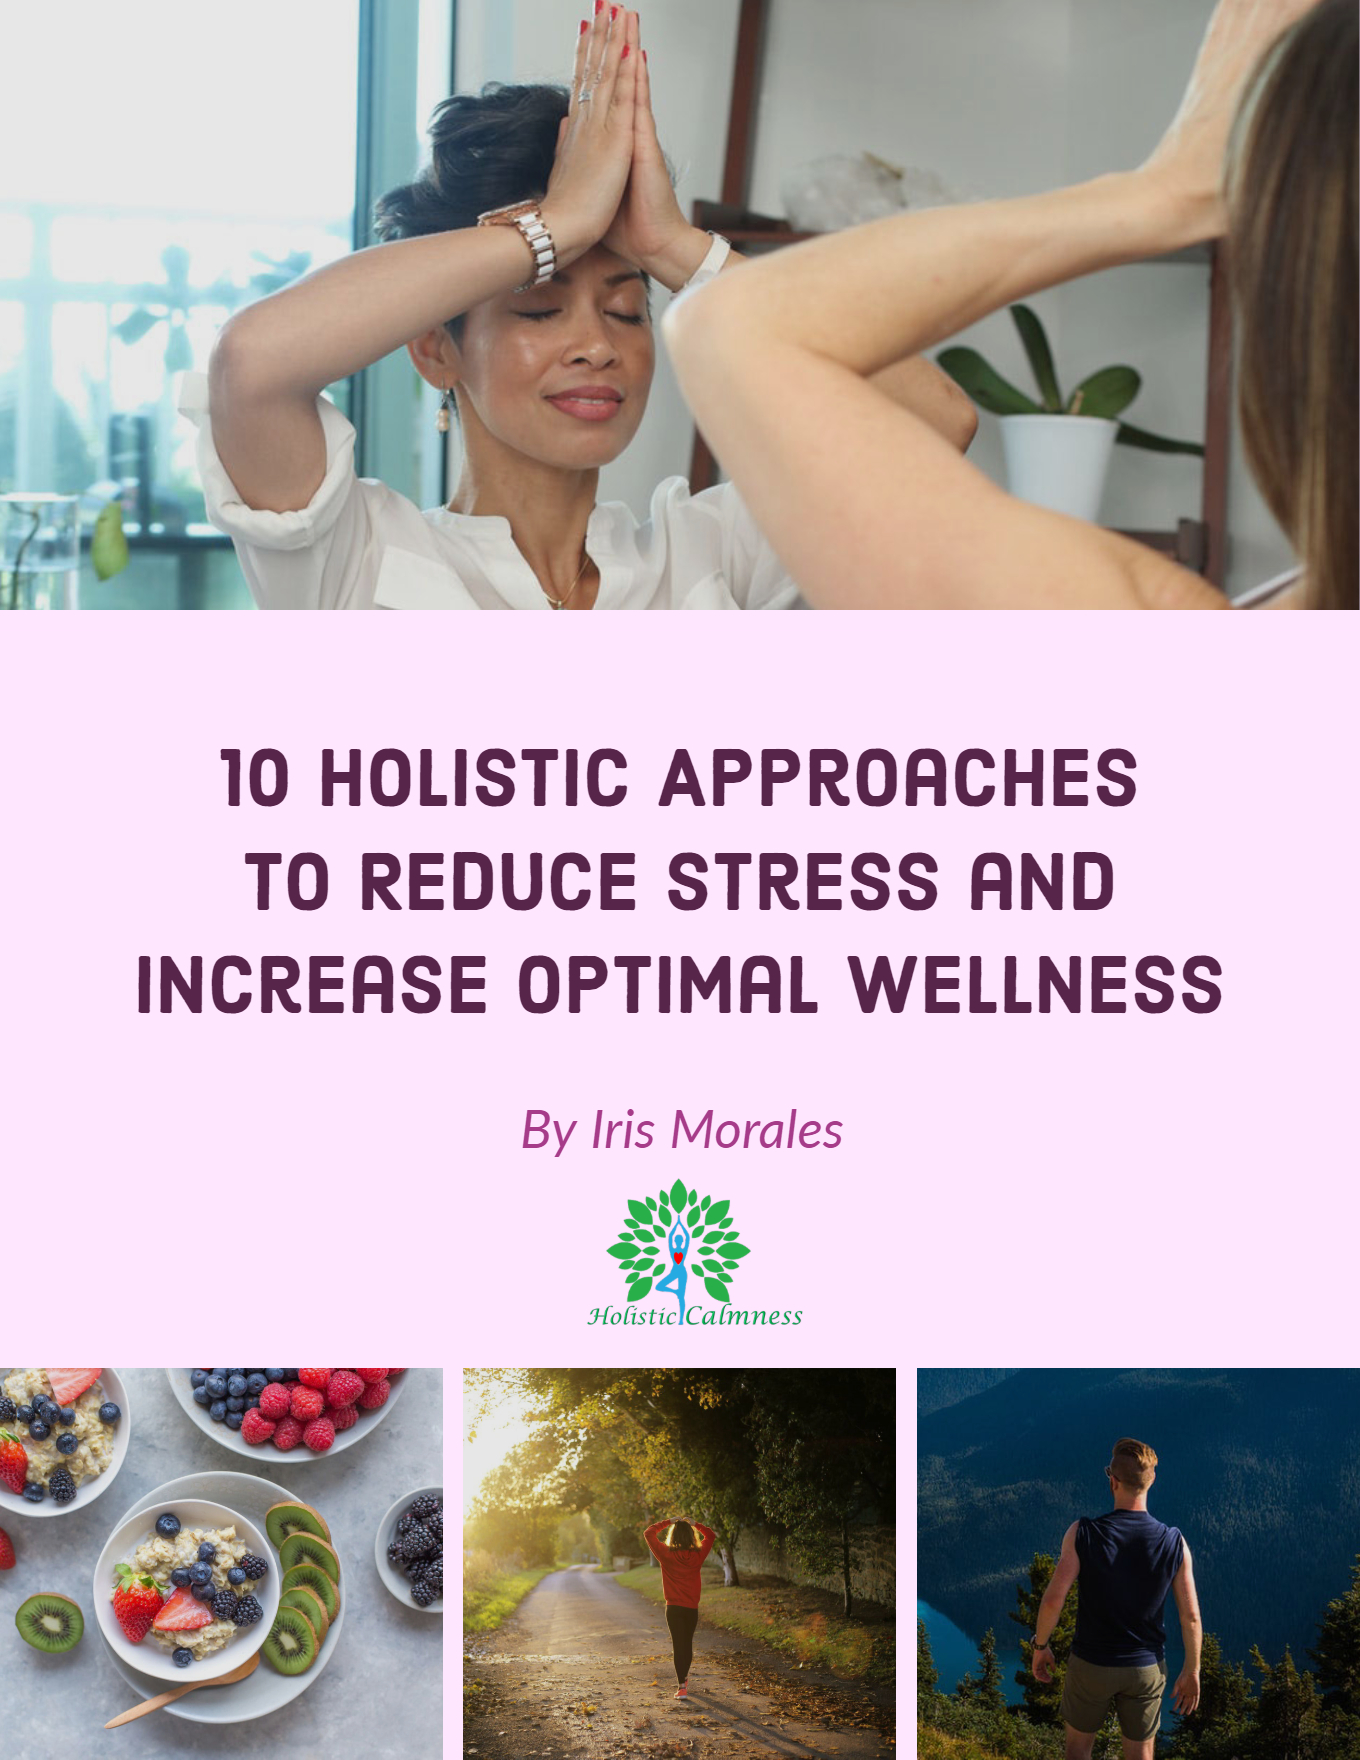 10 Holistic Approaches to Reduce Stress and increase Optimal Wellness